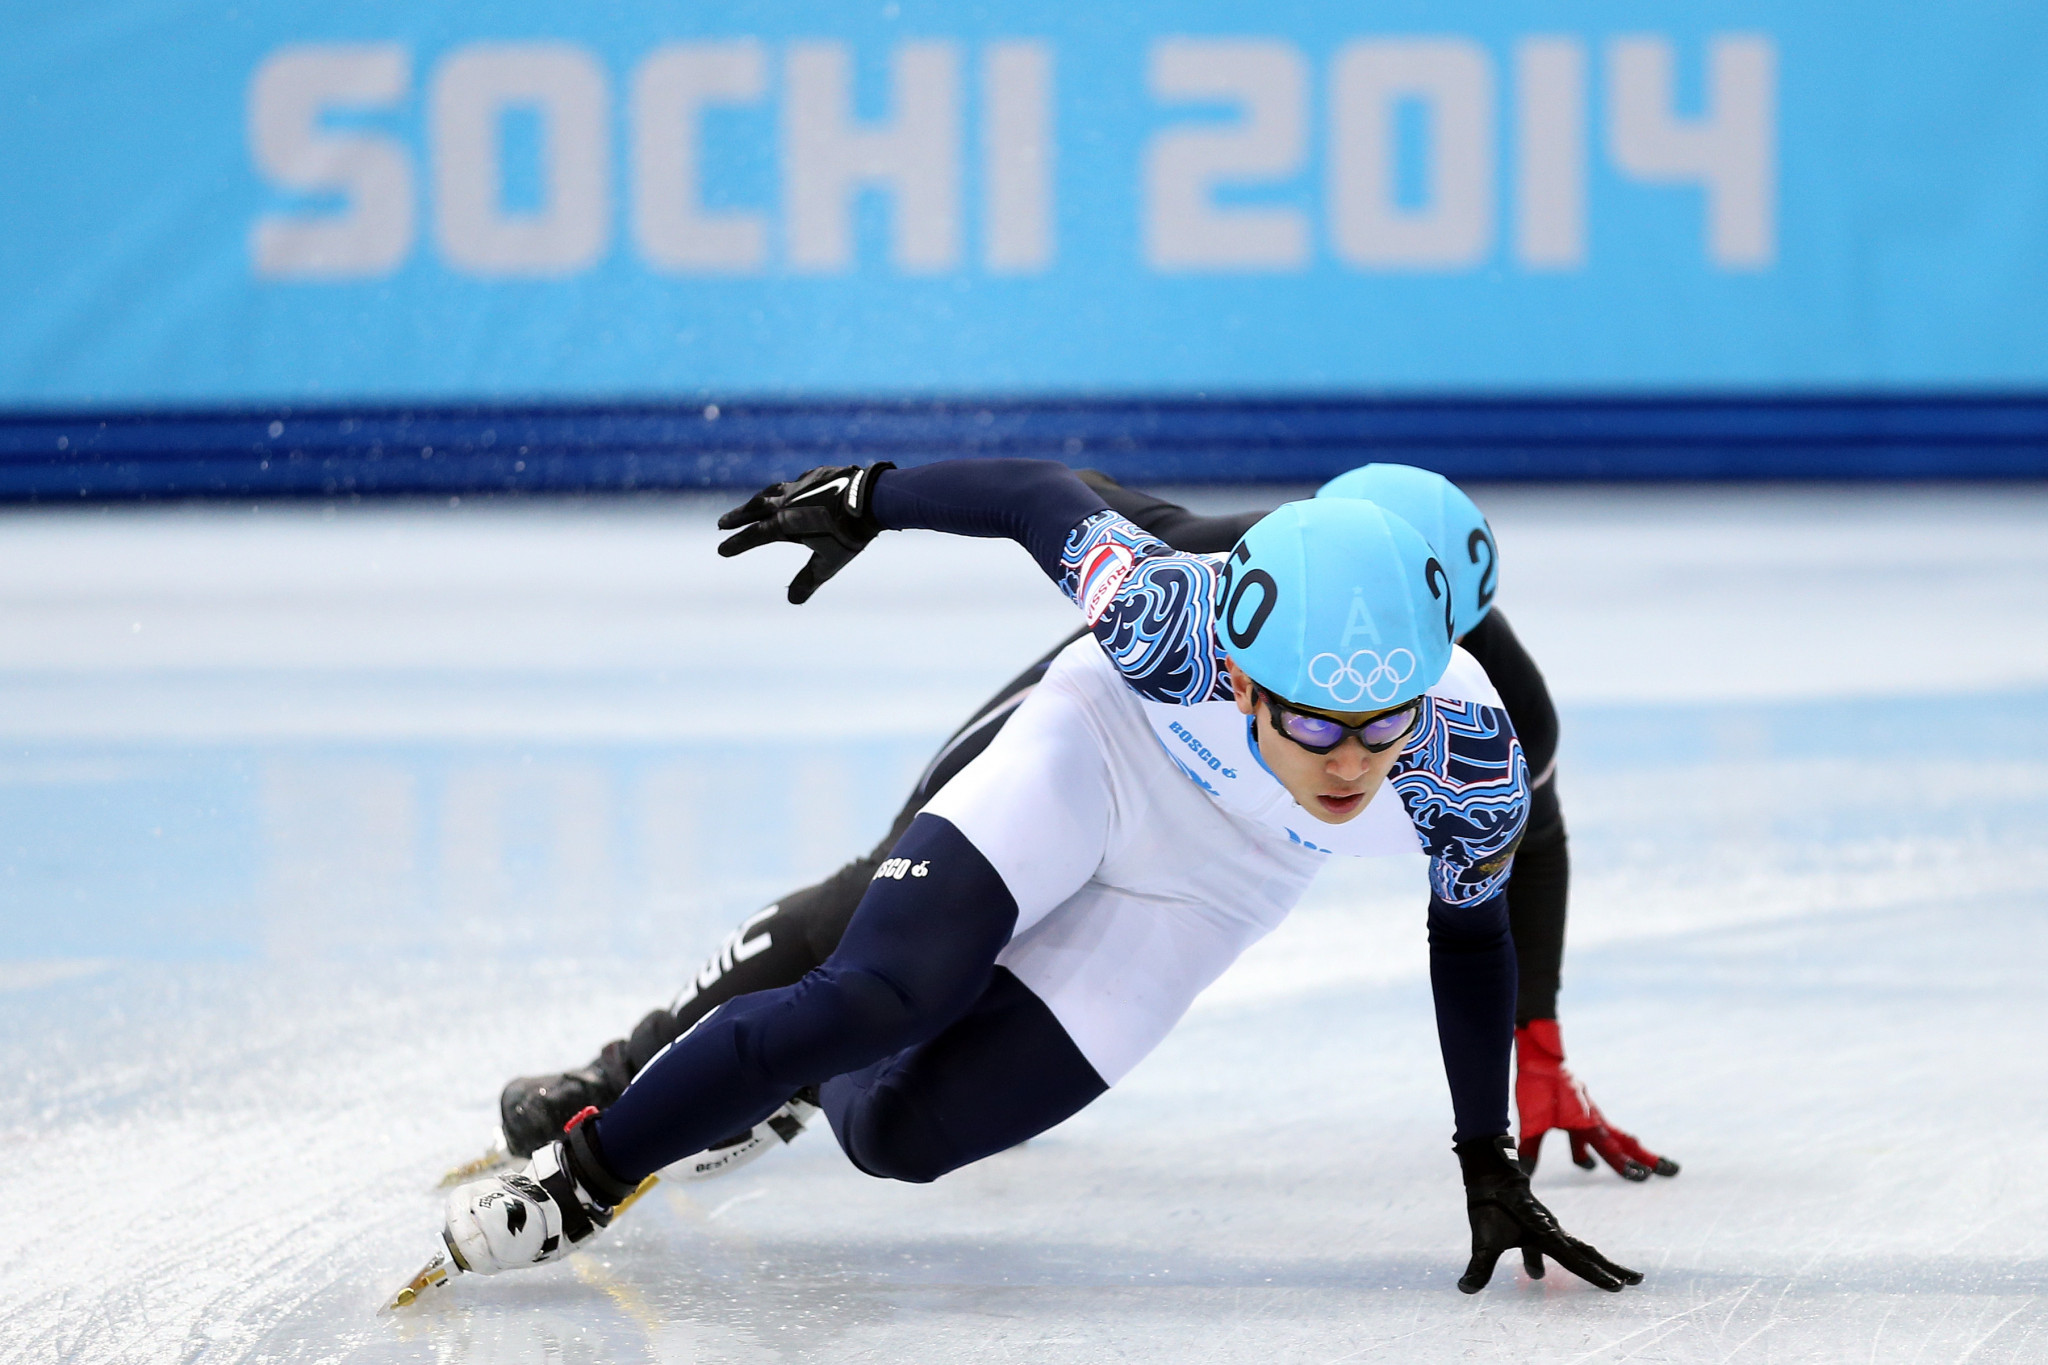 Viktor Ahn switched from South Korea to Russia in time for the 2014 Winter Olympics in Sochi, where he won four medals, including three gold, but was banned from Pyeongchang 2018 ©Getty Images